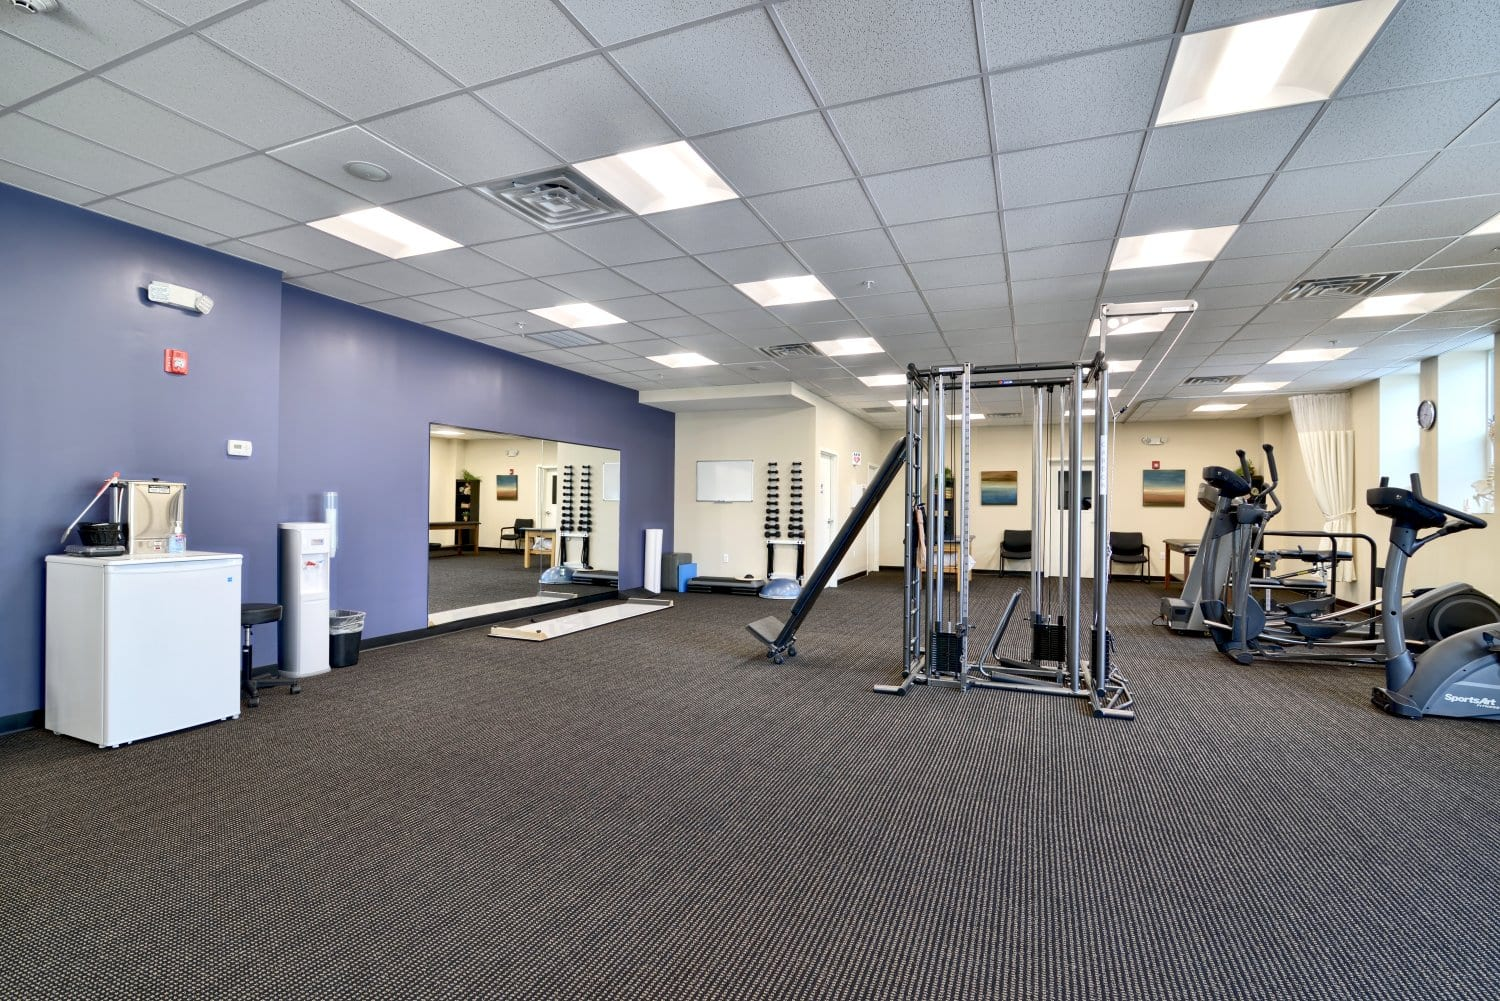 An image of the interior of our clean, well maintained physical therapy clinic in Waltham, Massachusetts.